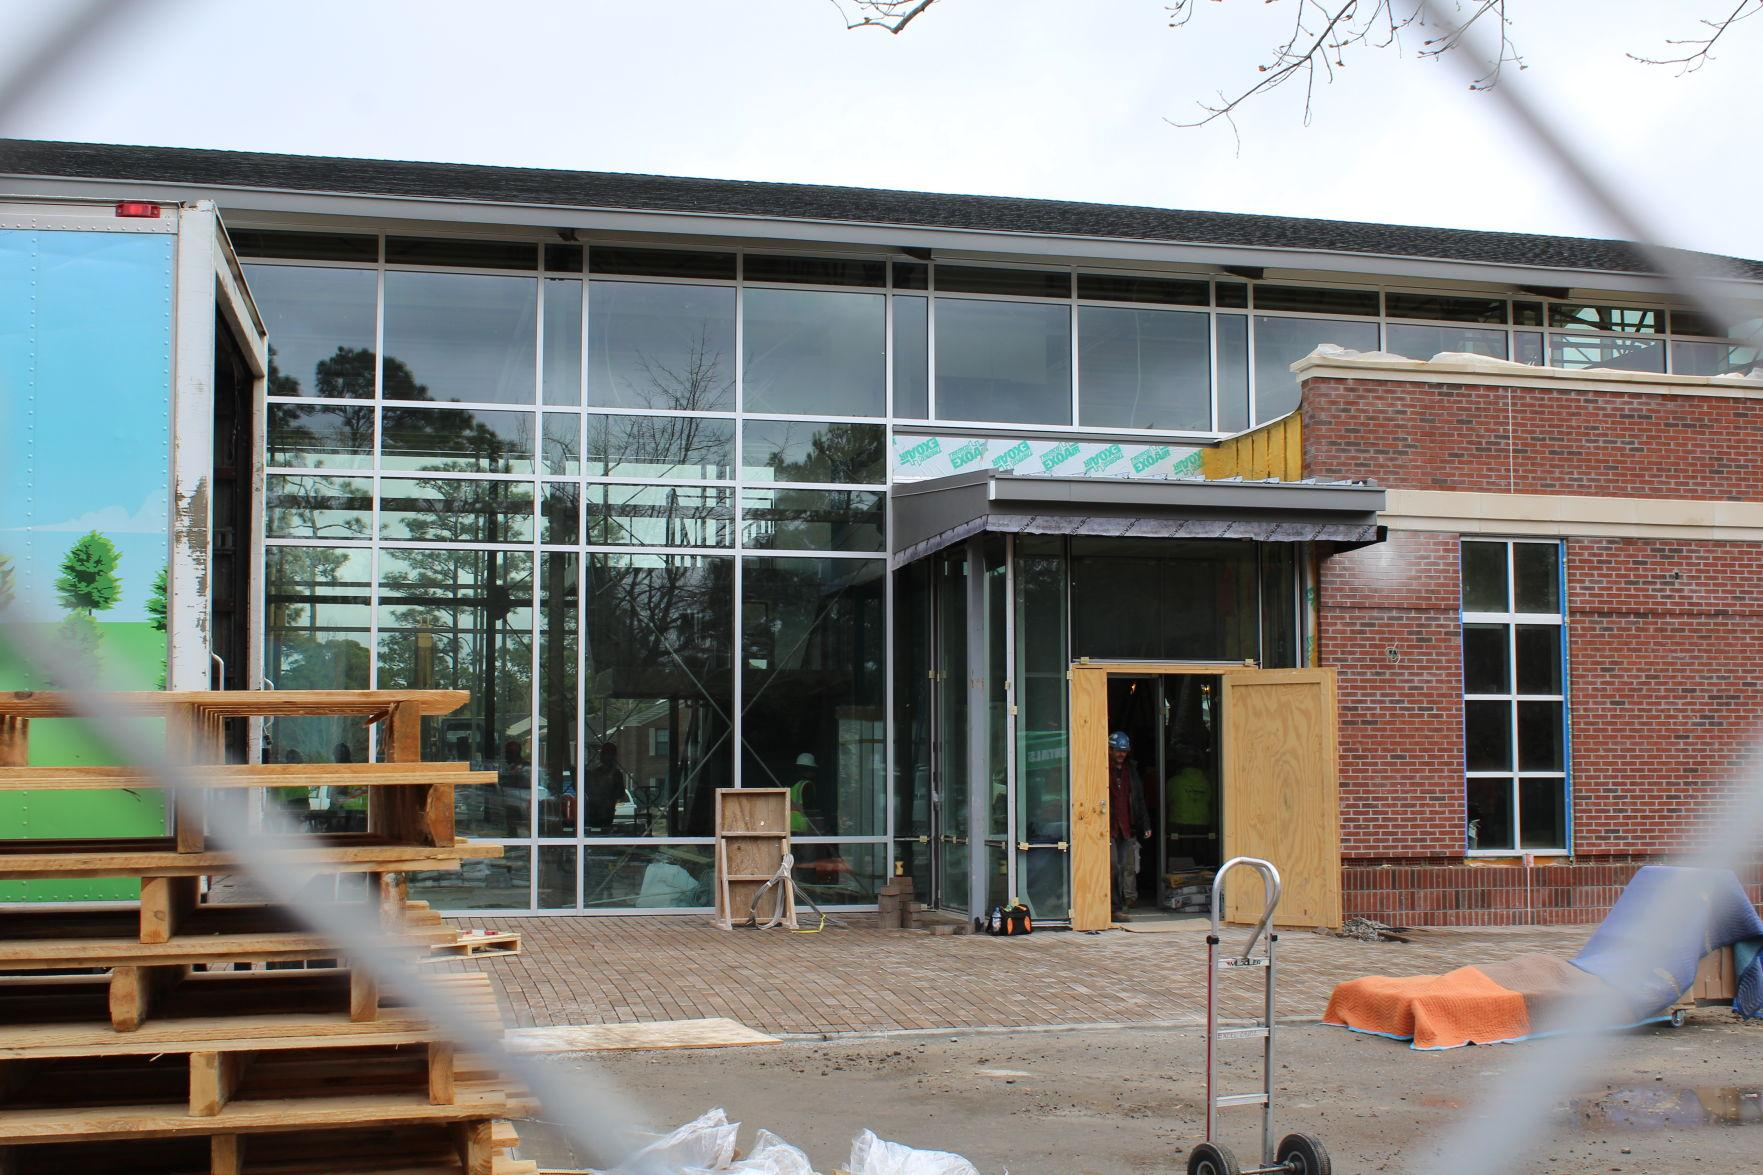 The Hub dining hall is currently under construction and is set to be complete this year.